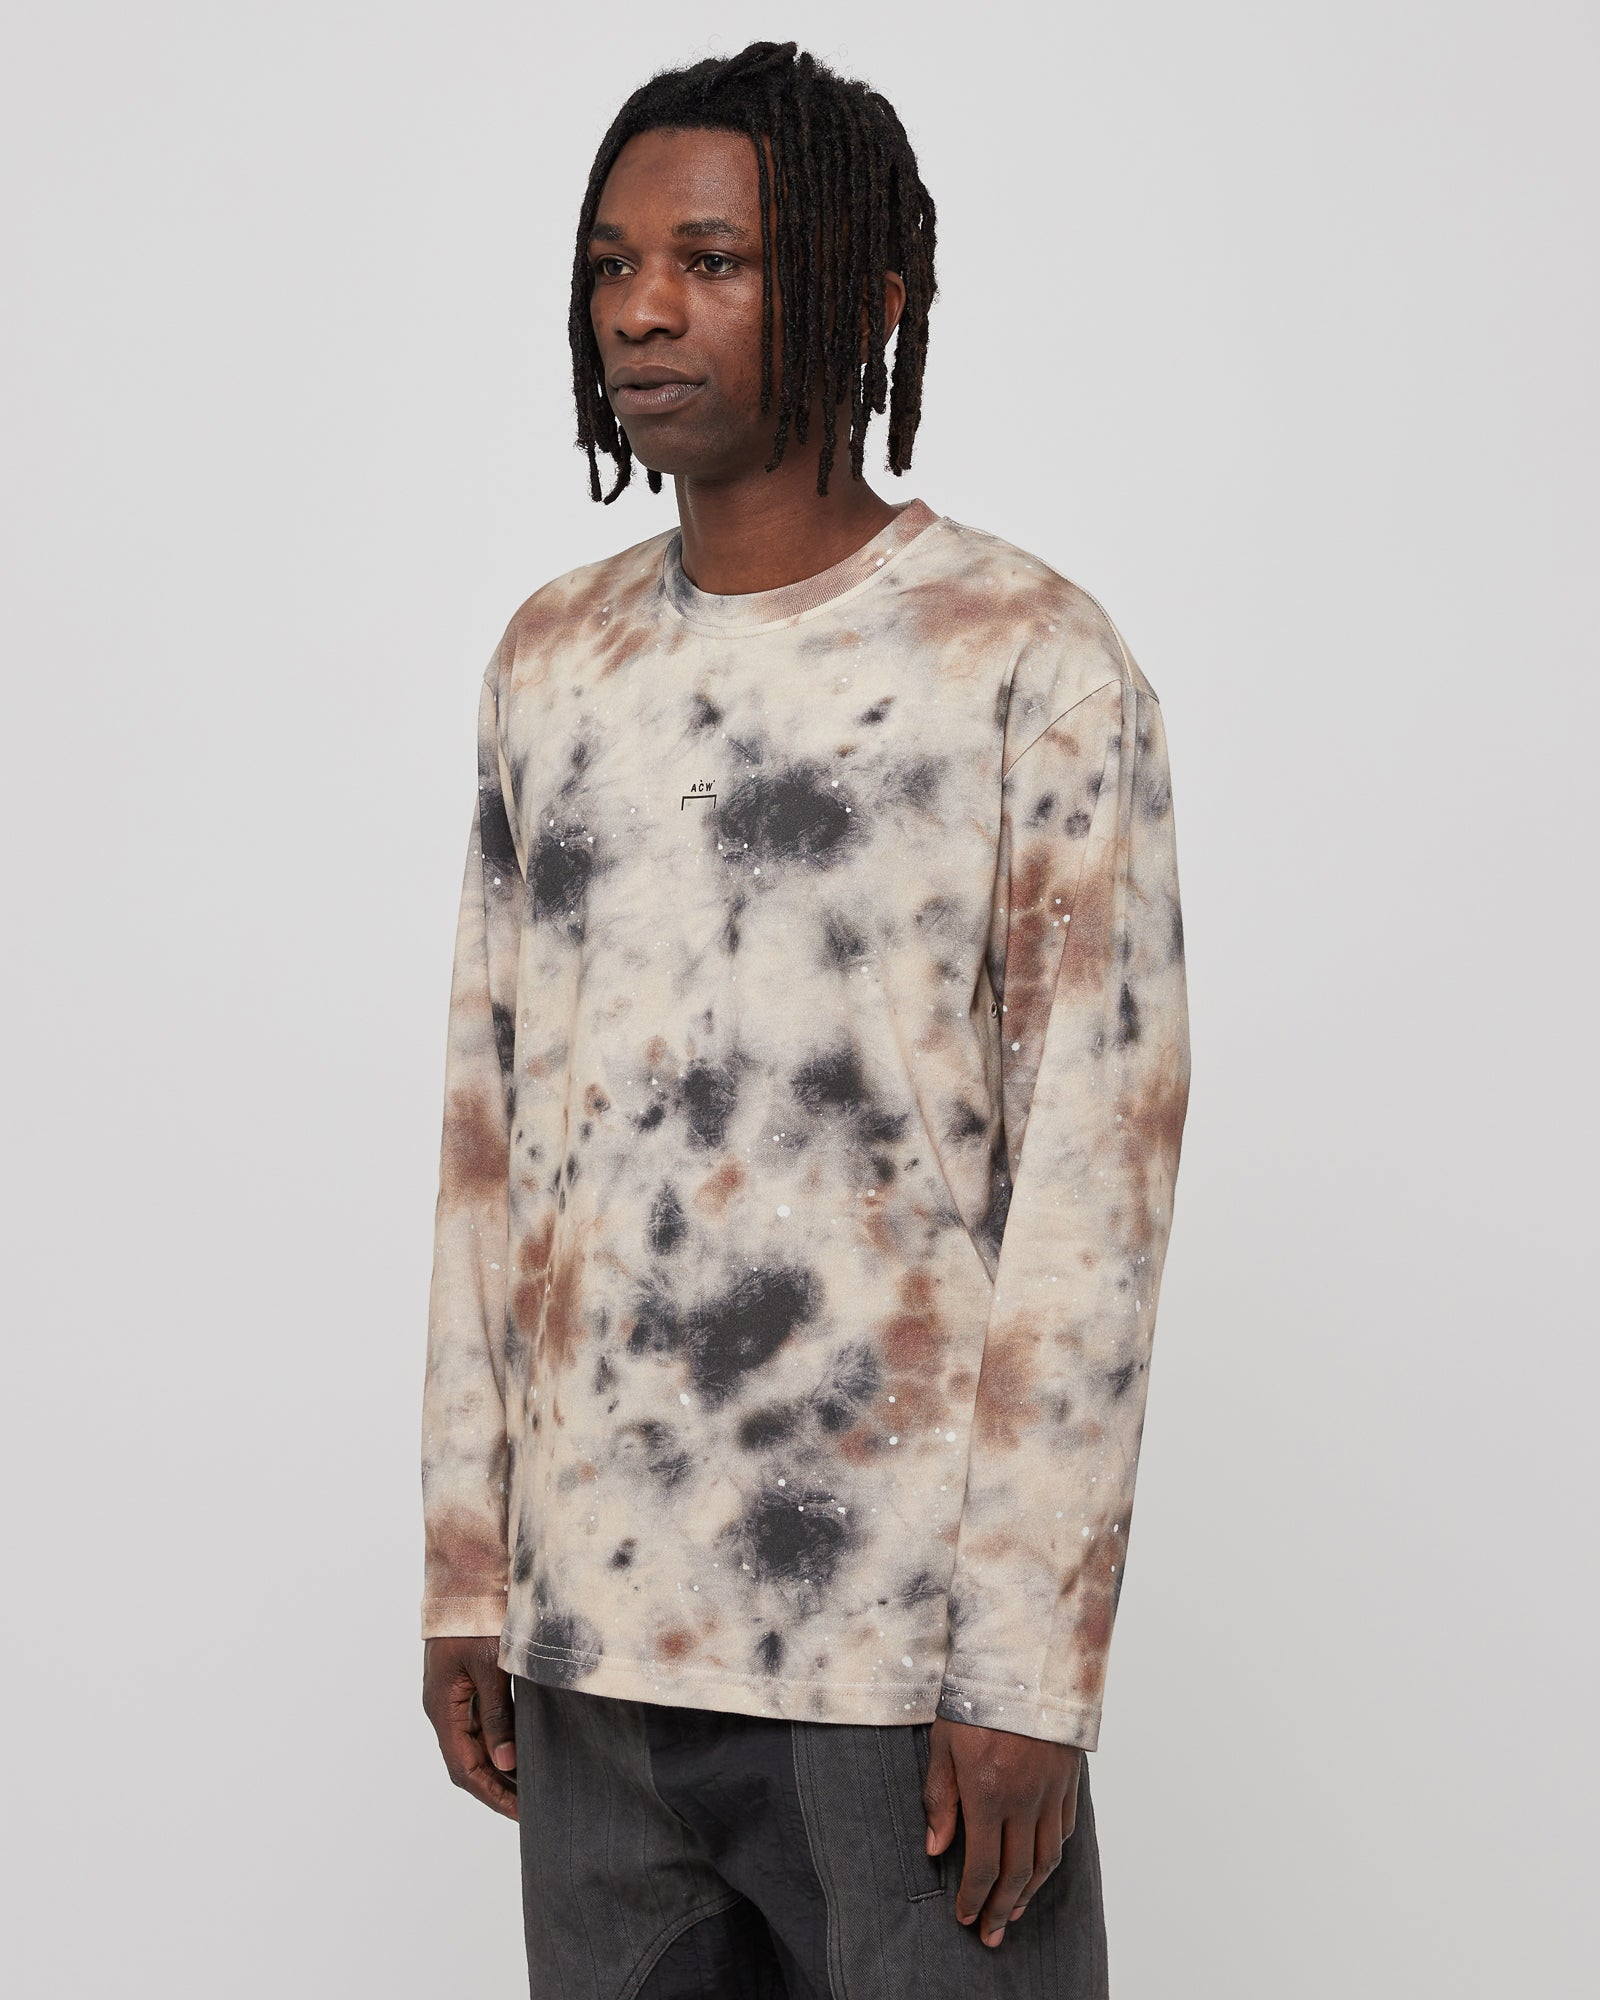 Diesel Red Tag L/S Top Stain T-Shirt in Beige